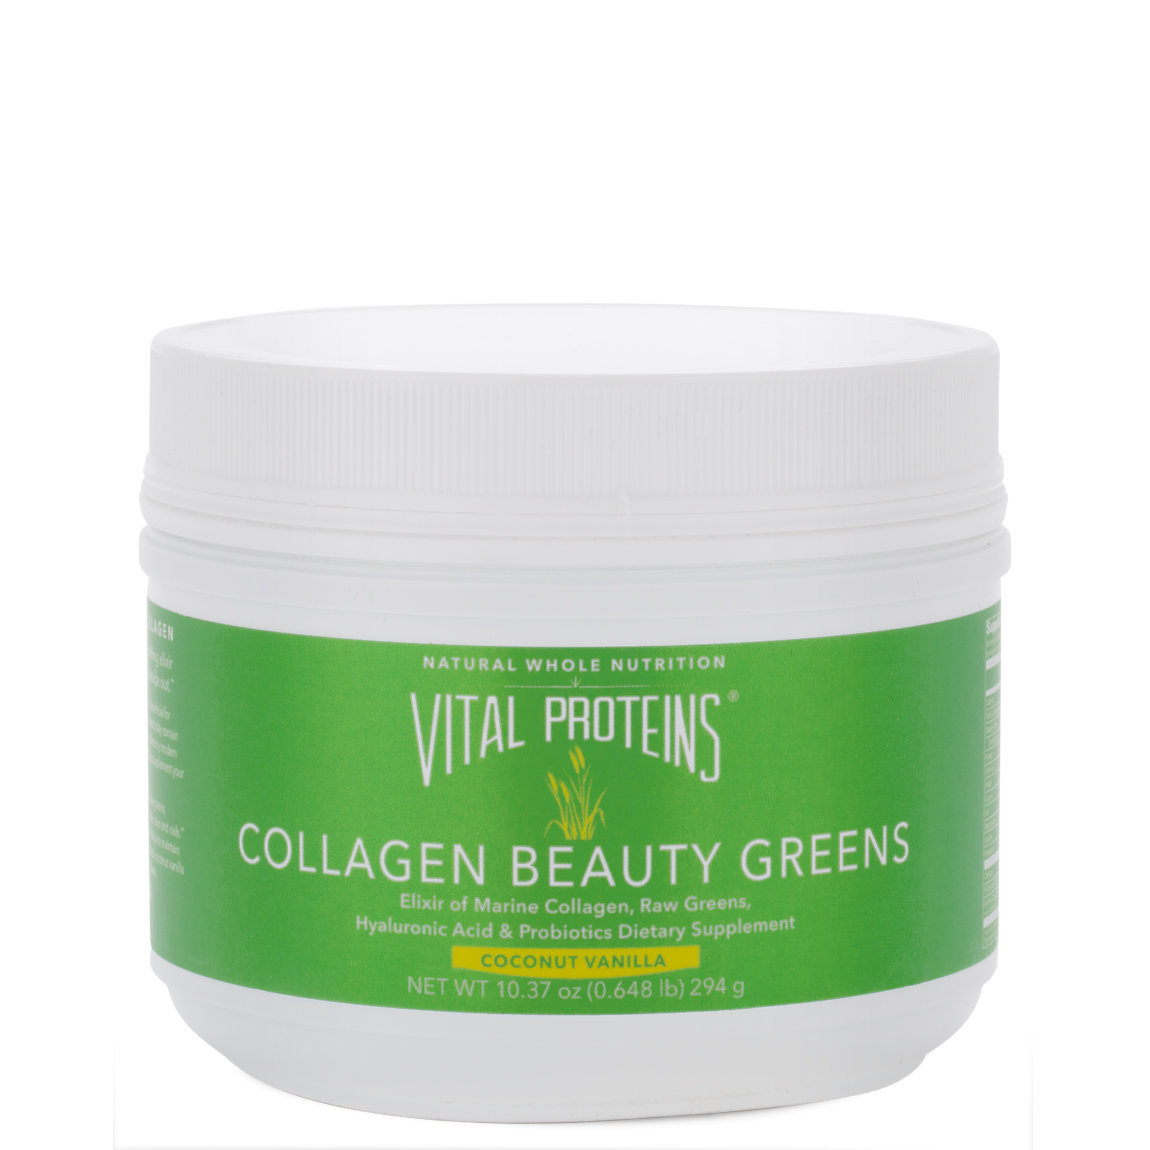 Vital Proteins Collagen Beauty Greens product swatch.